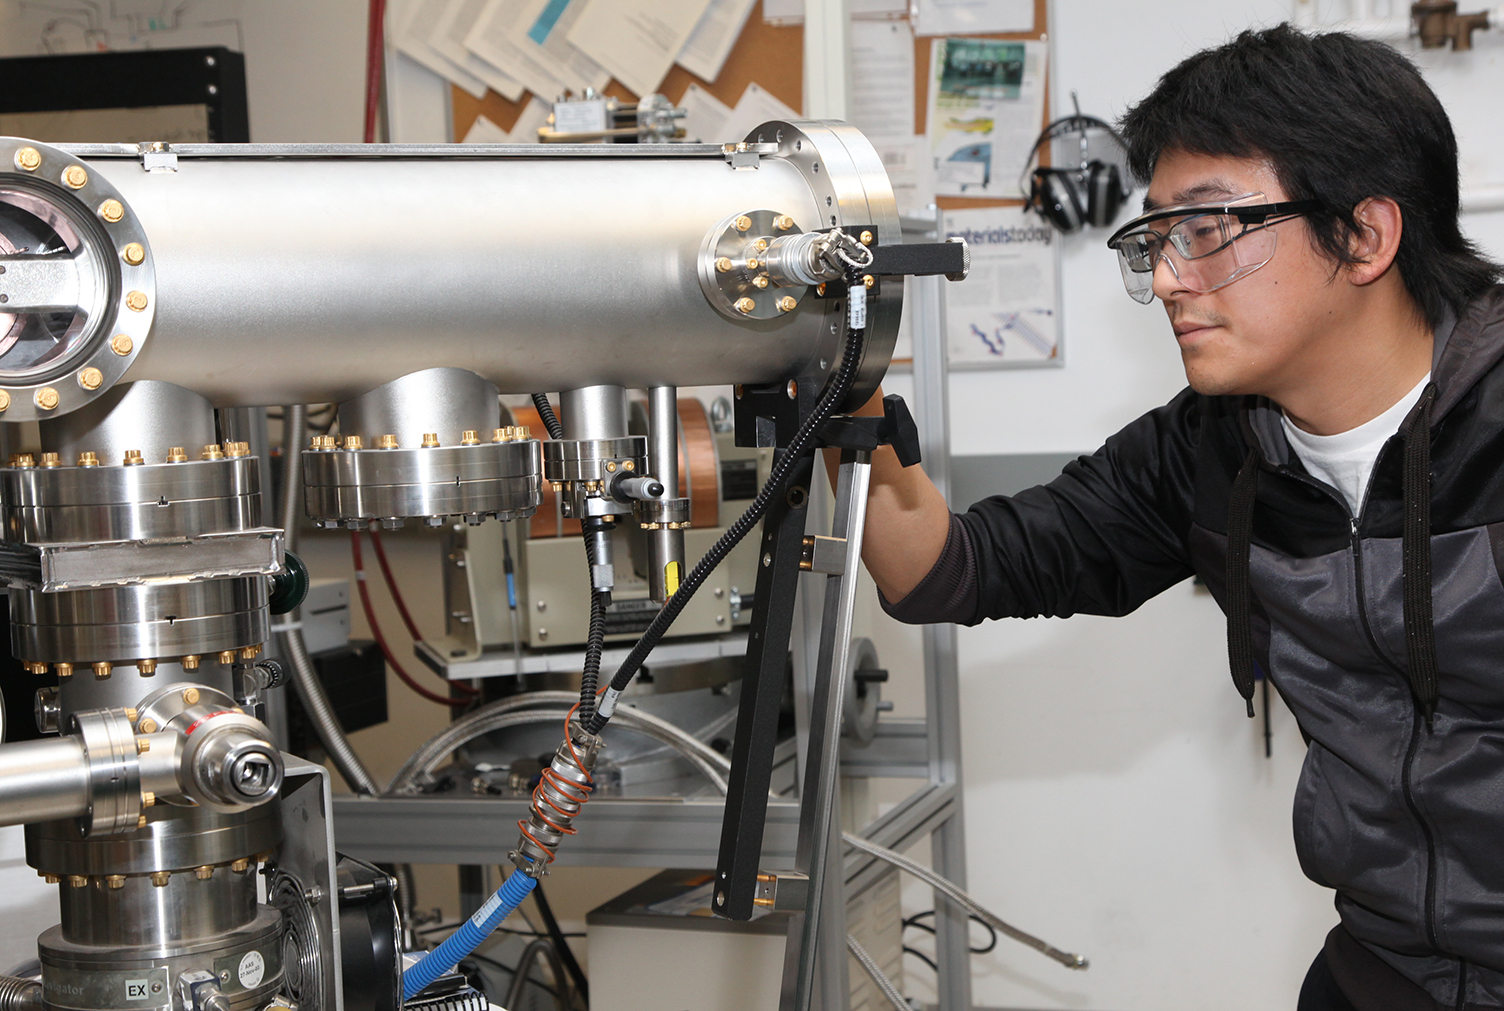 Nanoscale Engineering student looks at tool in a lab on SUNY Poly's Albany campus